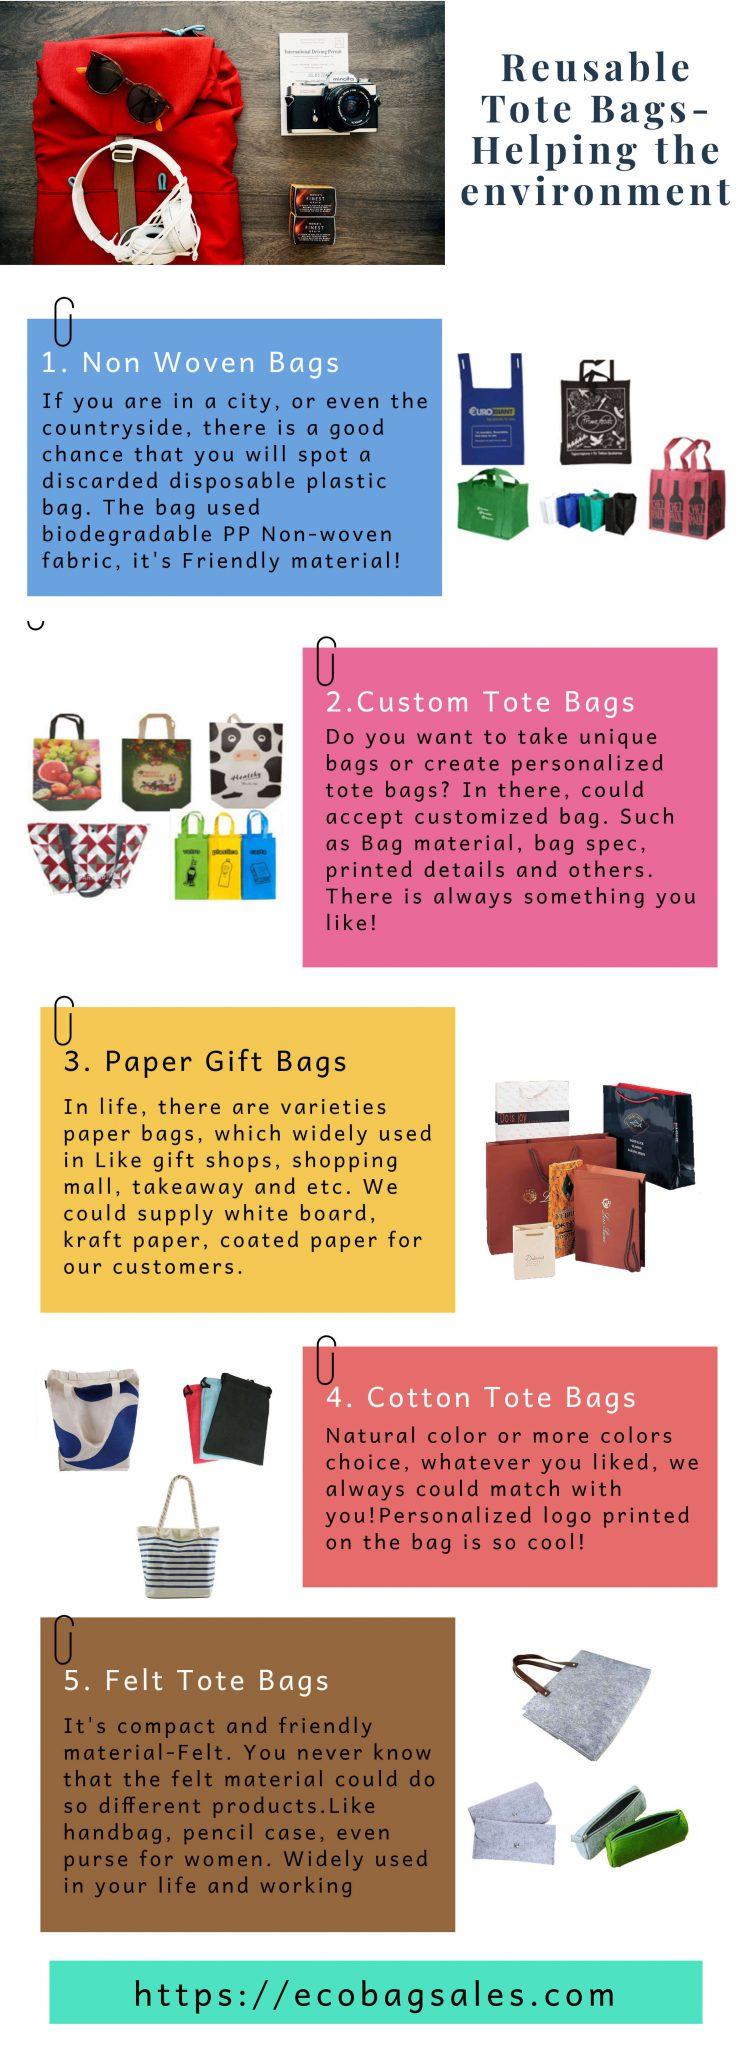 Reusable Tote Bags Infographic